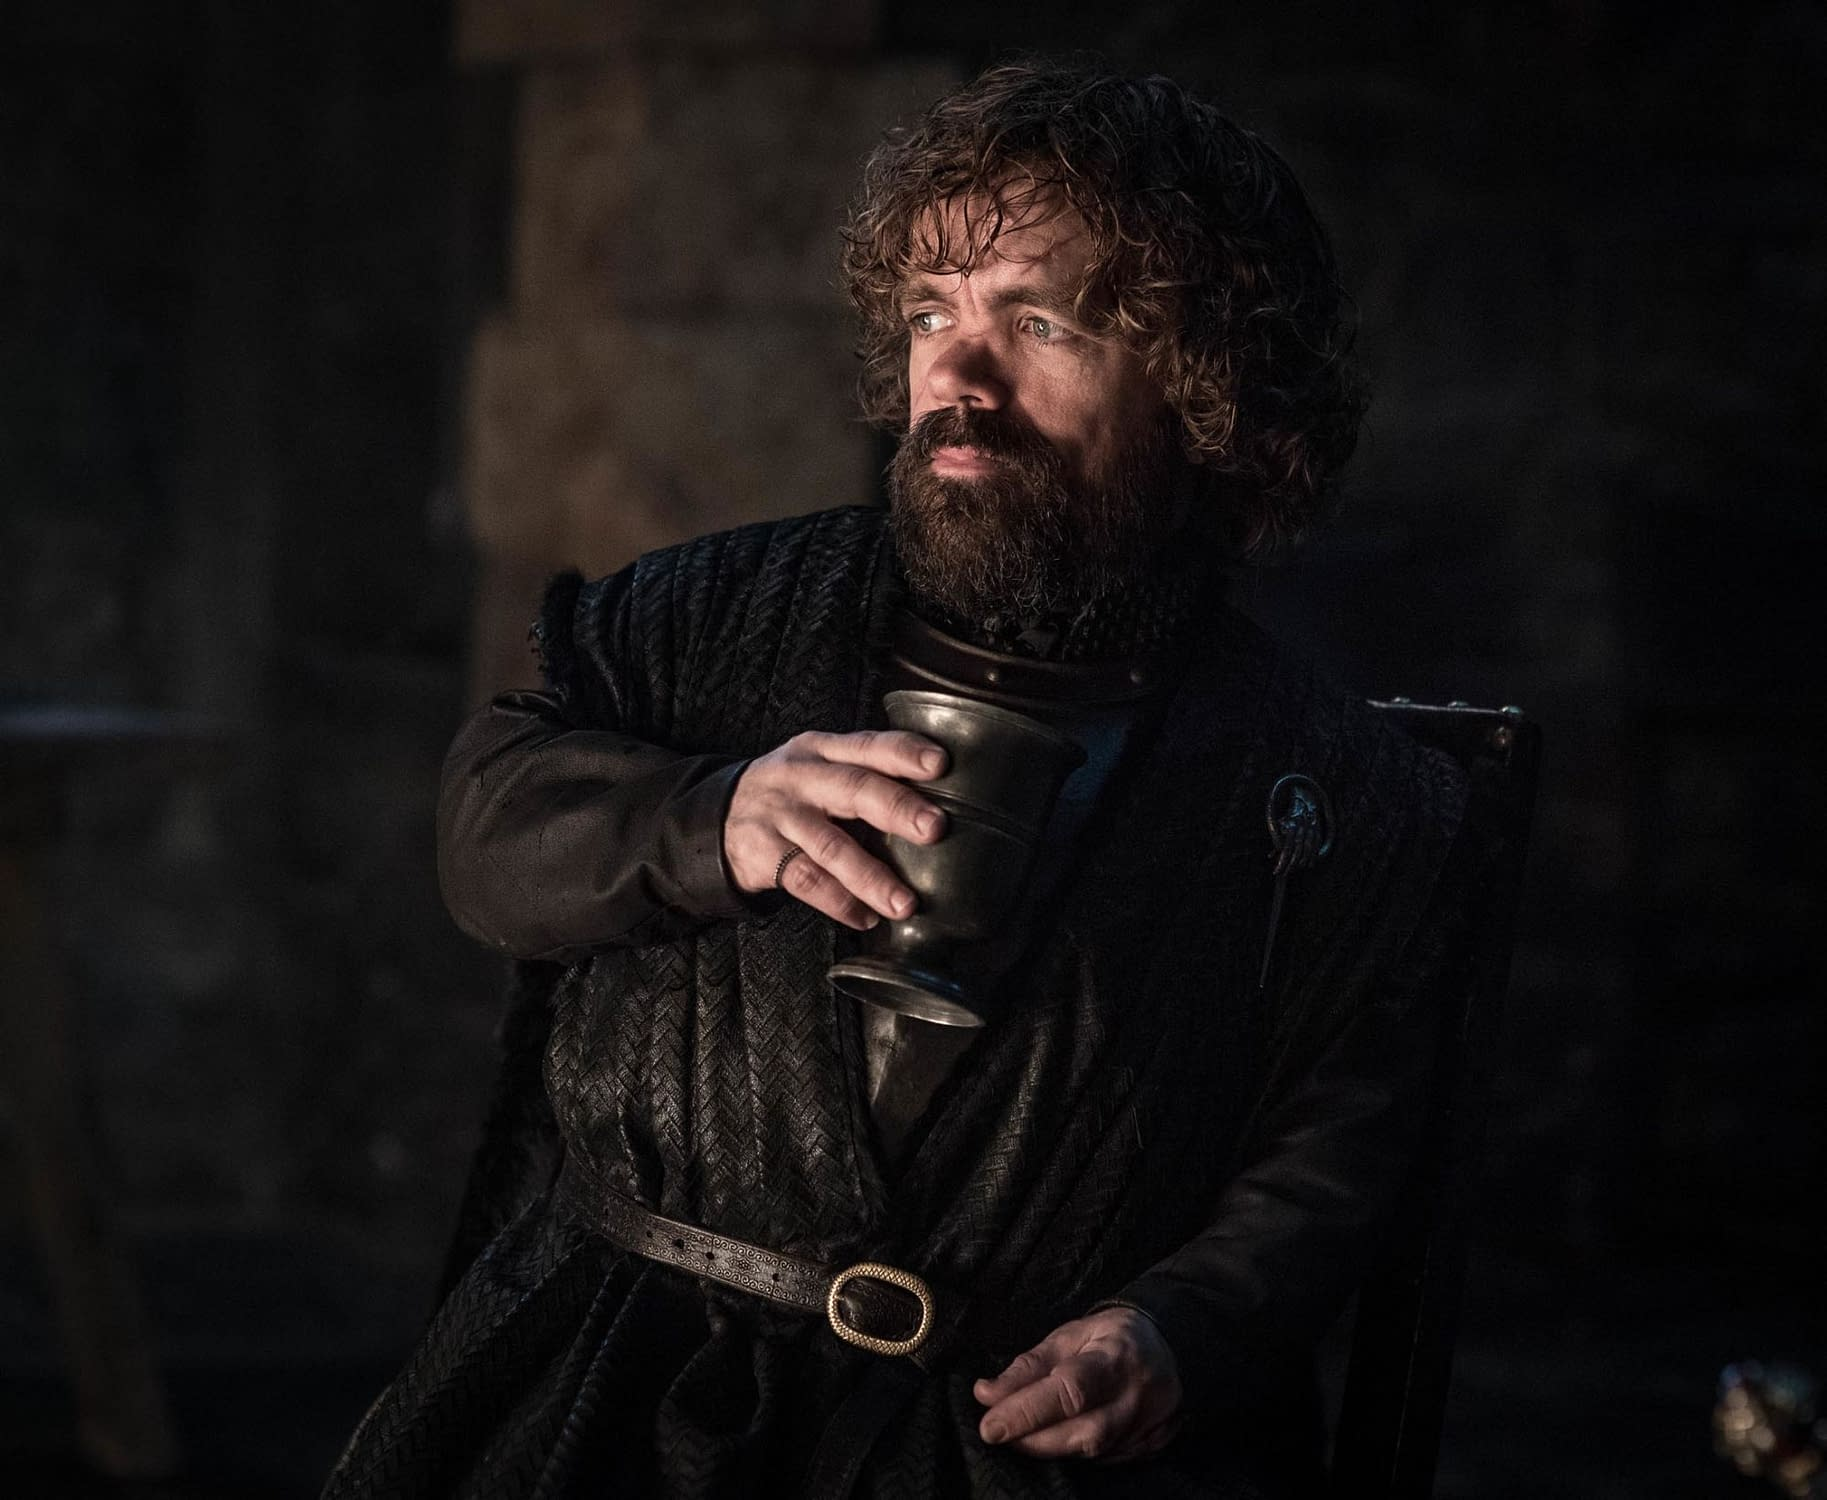 Whoops, 'Game of Thrones' Season 8 Goes 2-For-2 with Episode Leaks